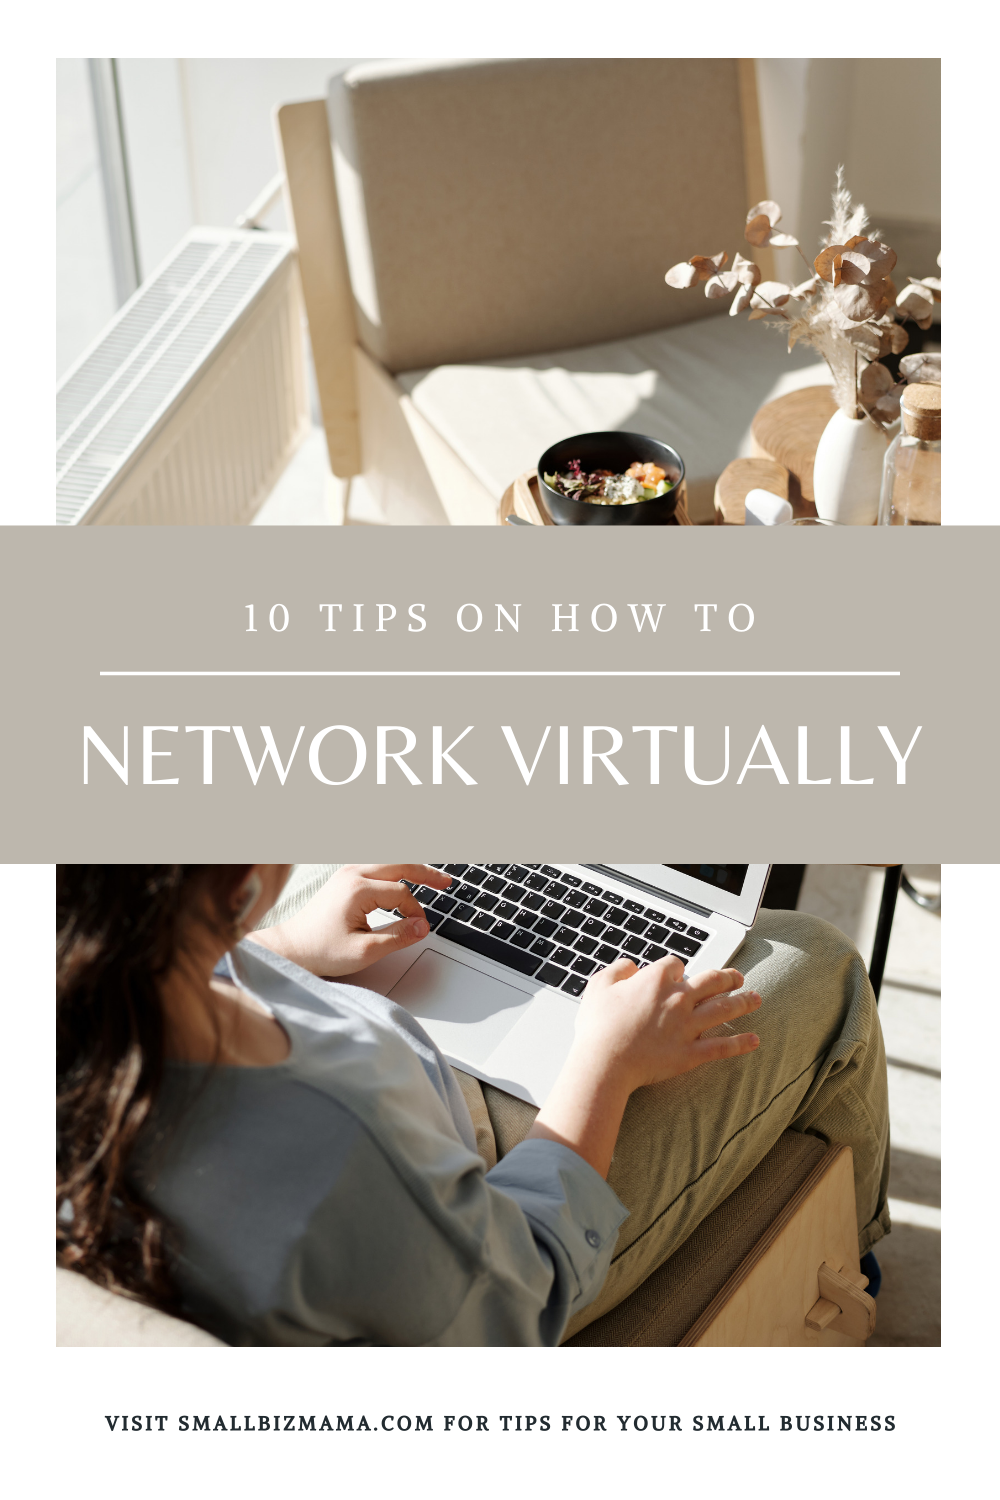 10 tips on how to network virtually since your business is national